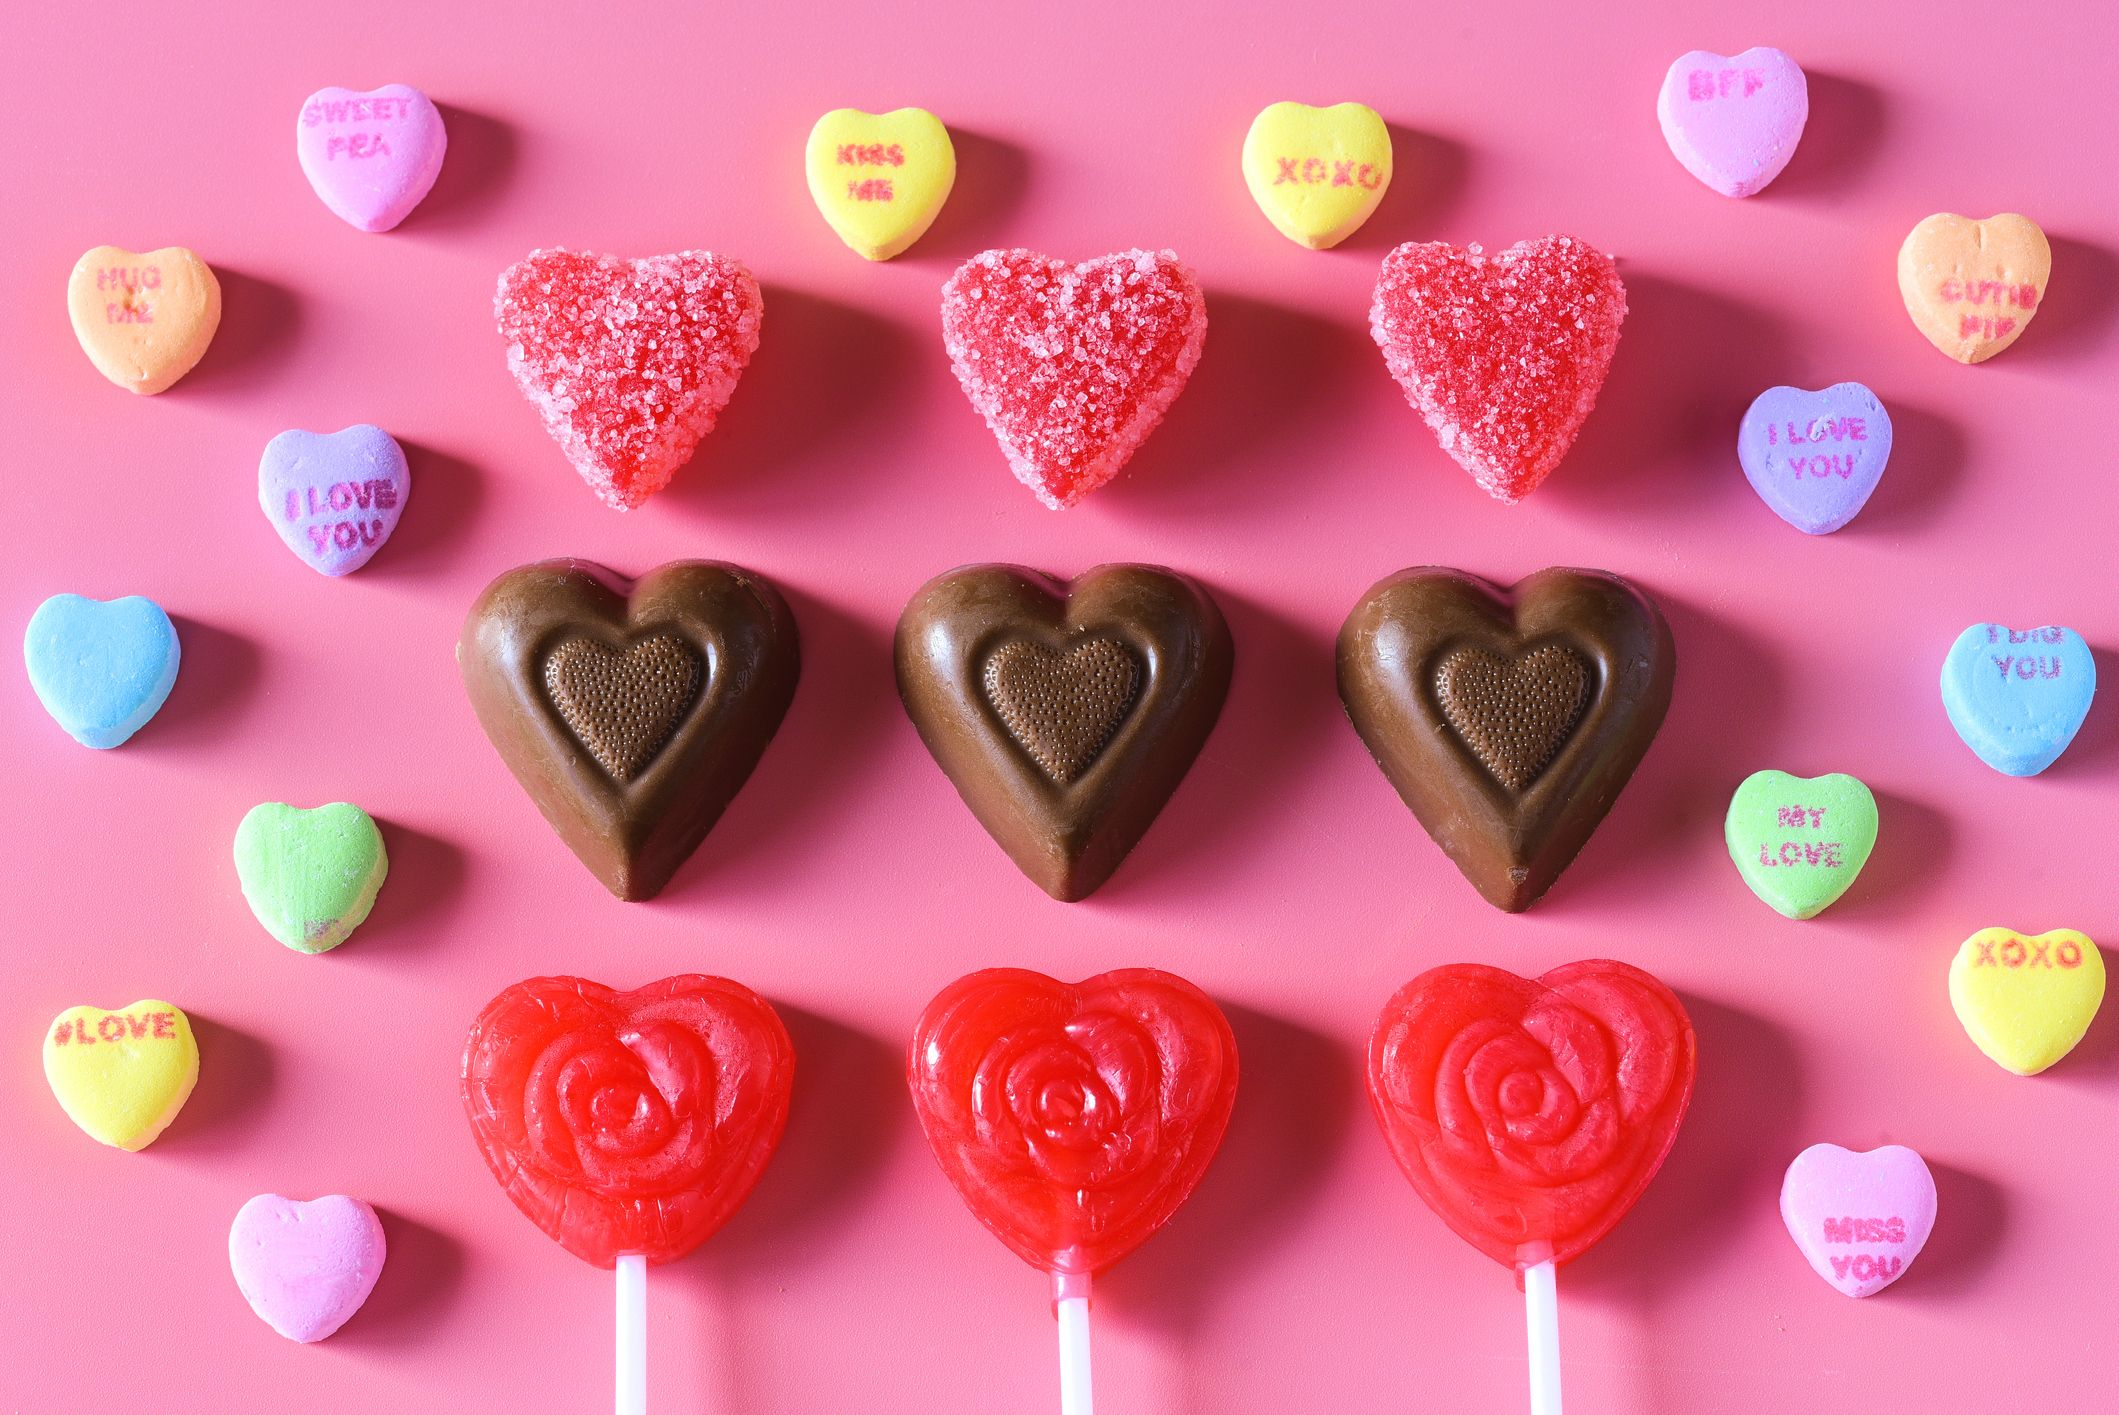 The 41 Best Valentine's Day Chocolates And Candies To Give Your Love In 2020